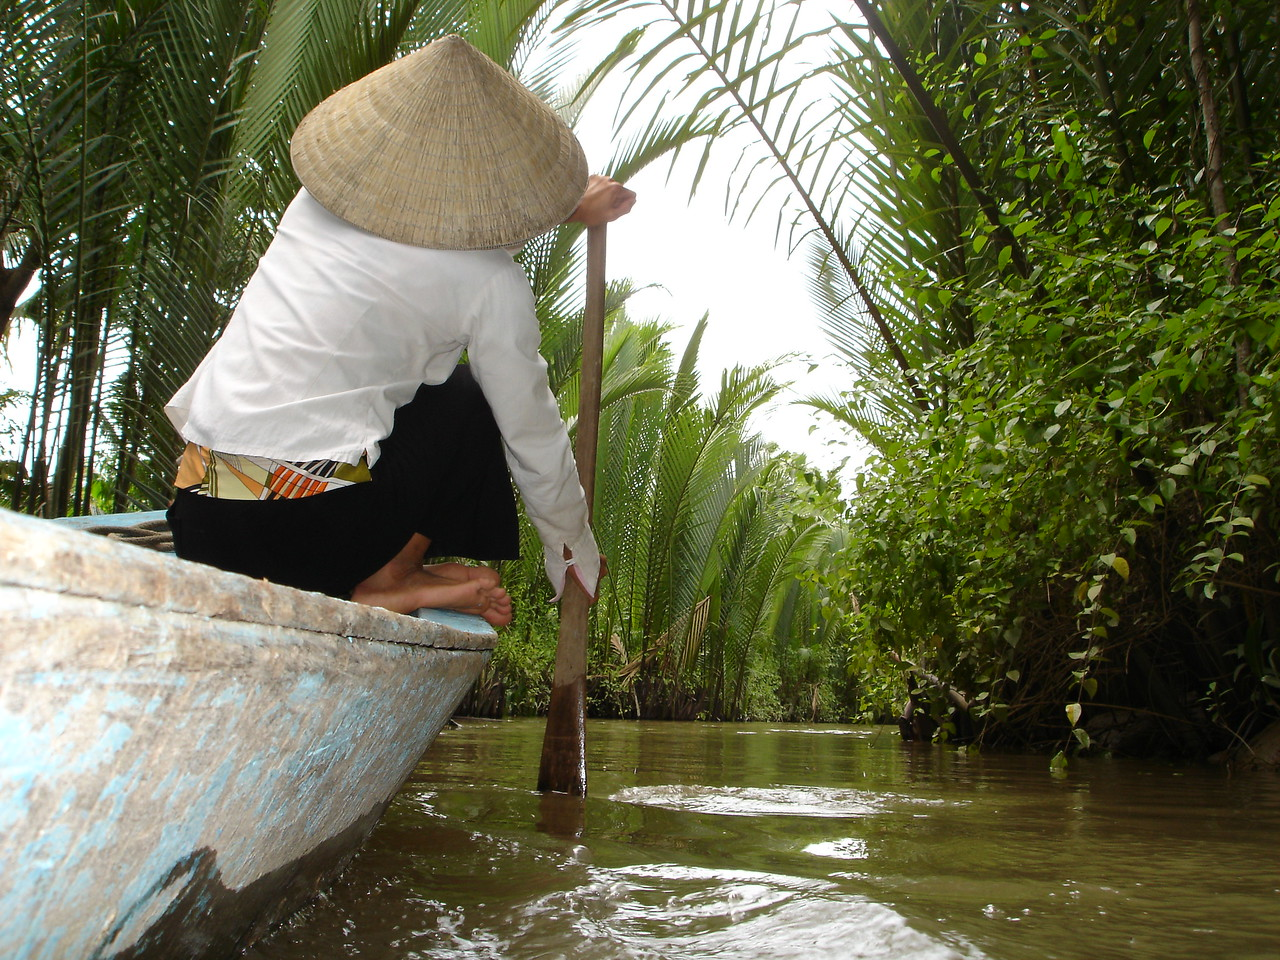 Taking small boat ride through farmland along the south side of the Mekong River.